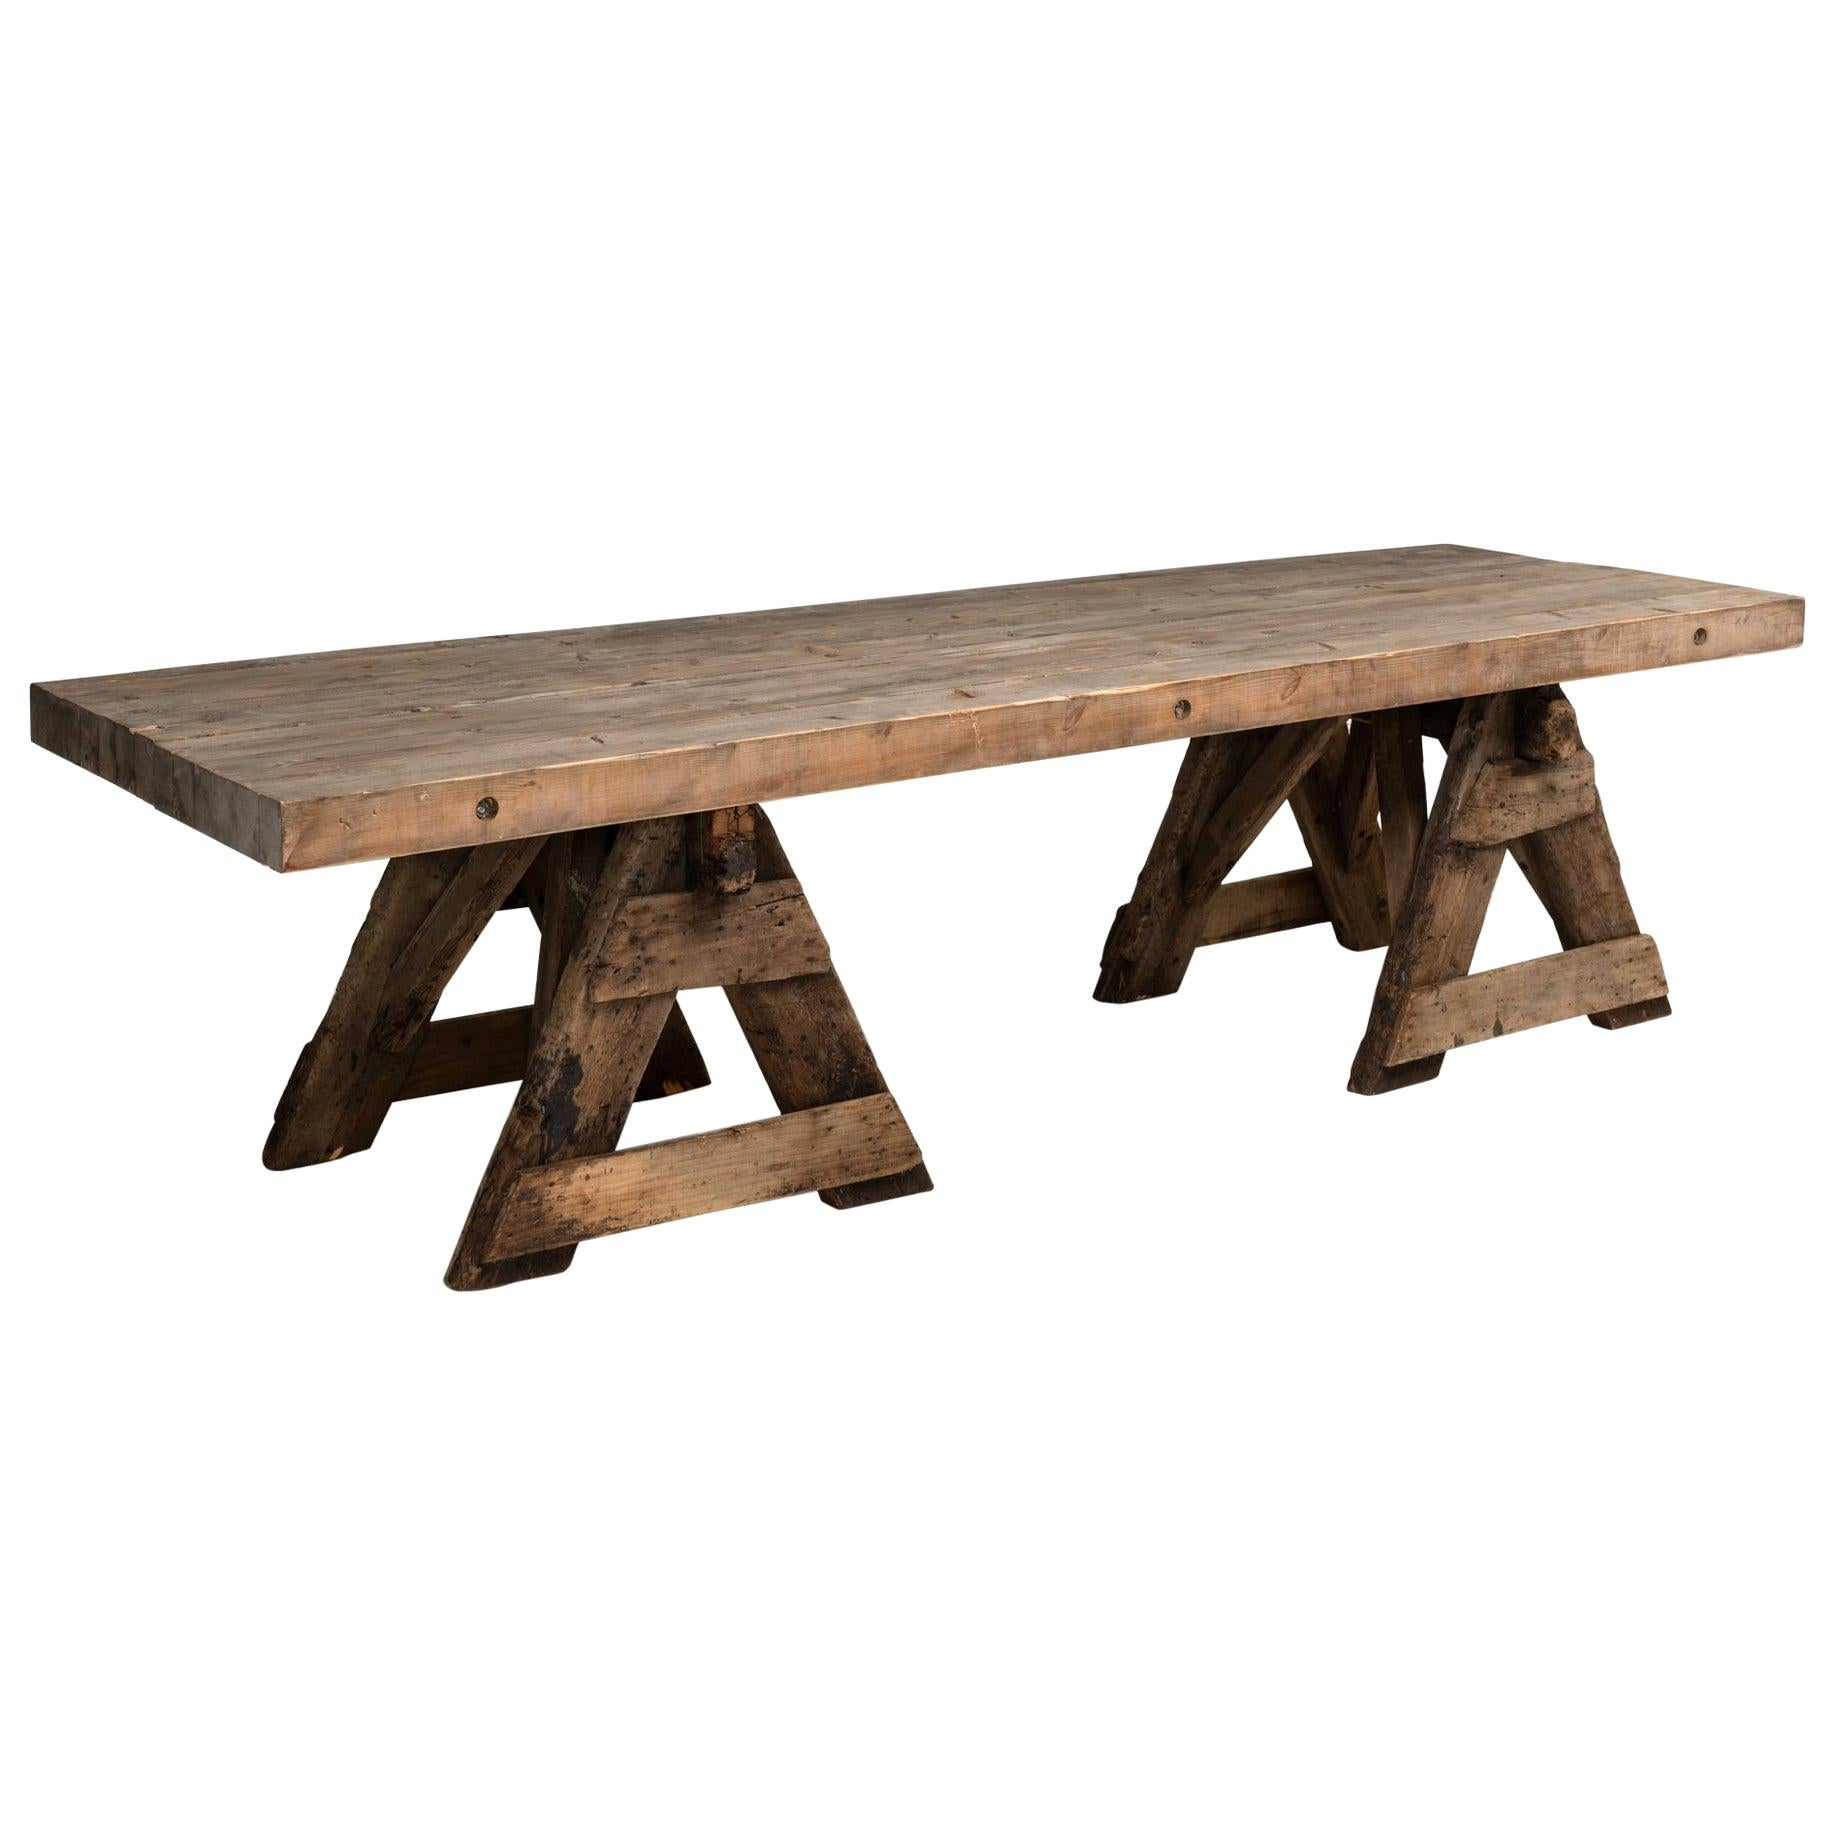 Primitive Work / Dining Trestle Table, France, circa 1930